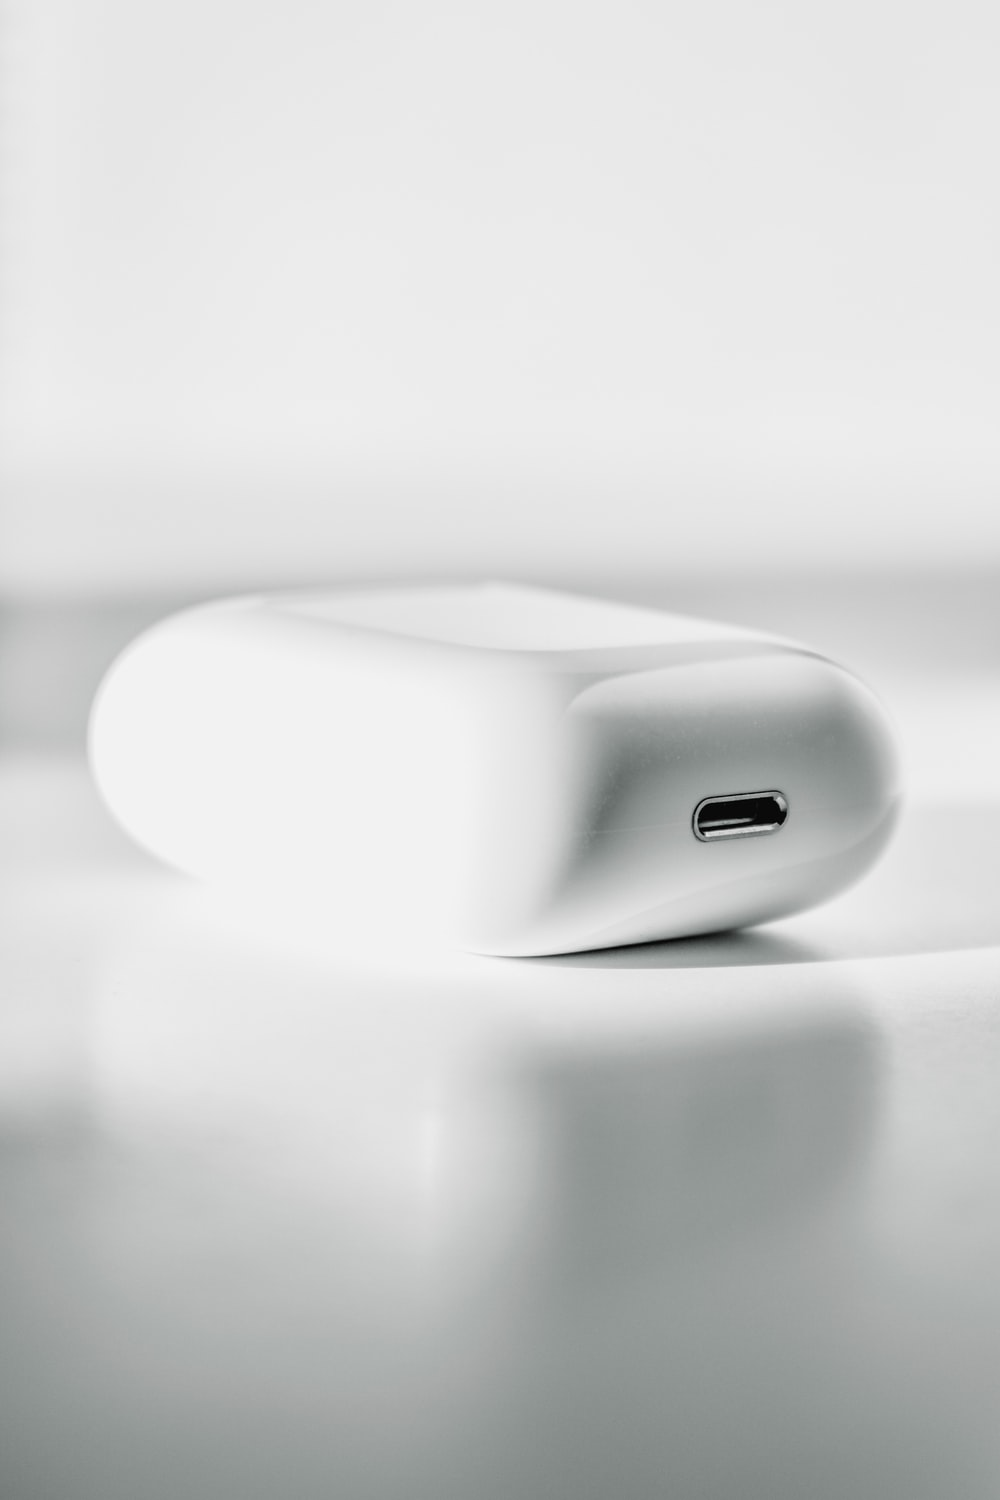 white apple charging case on white textile